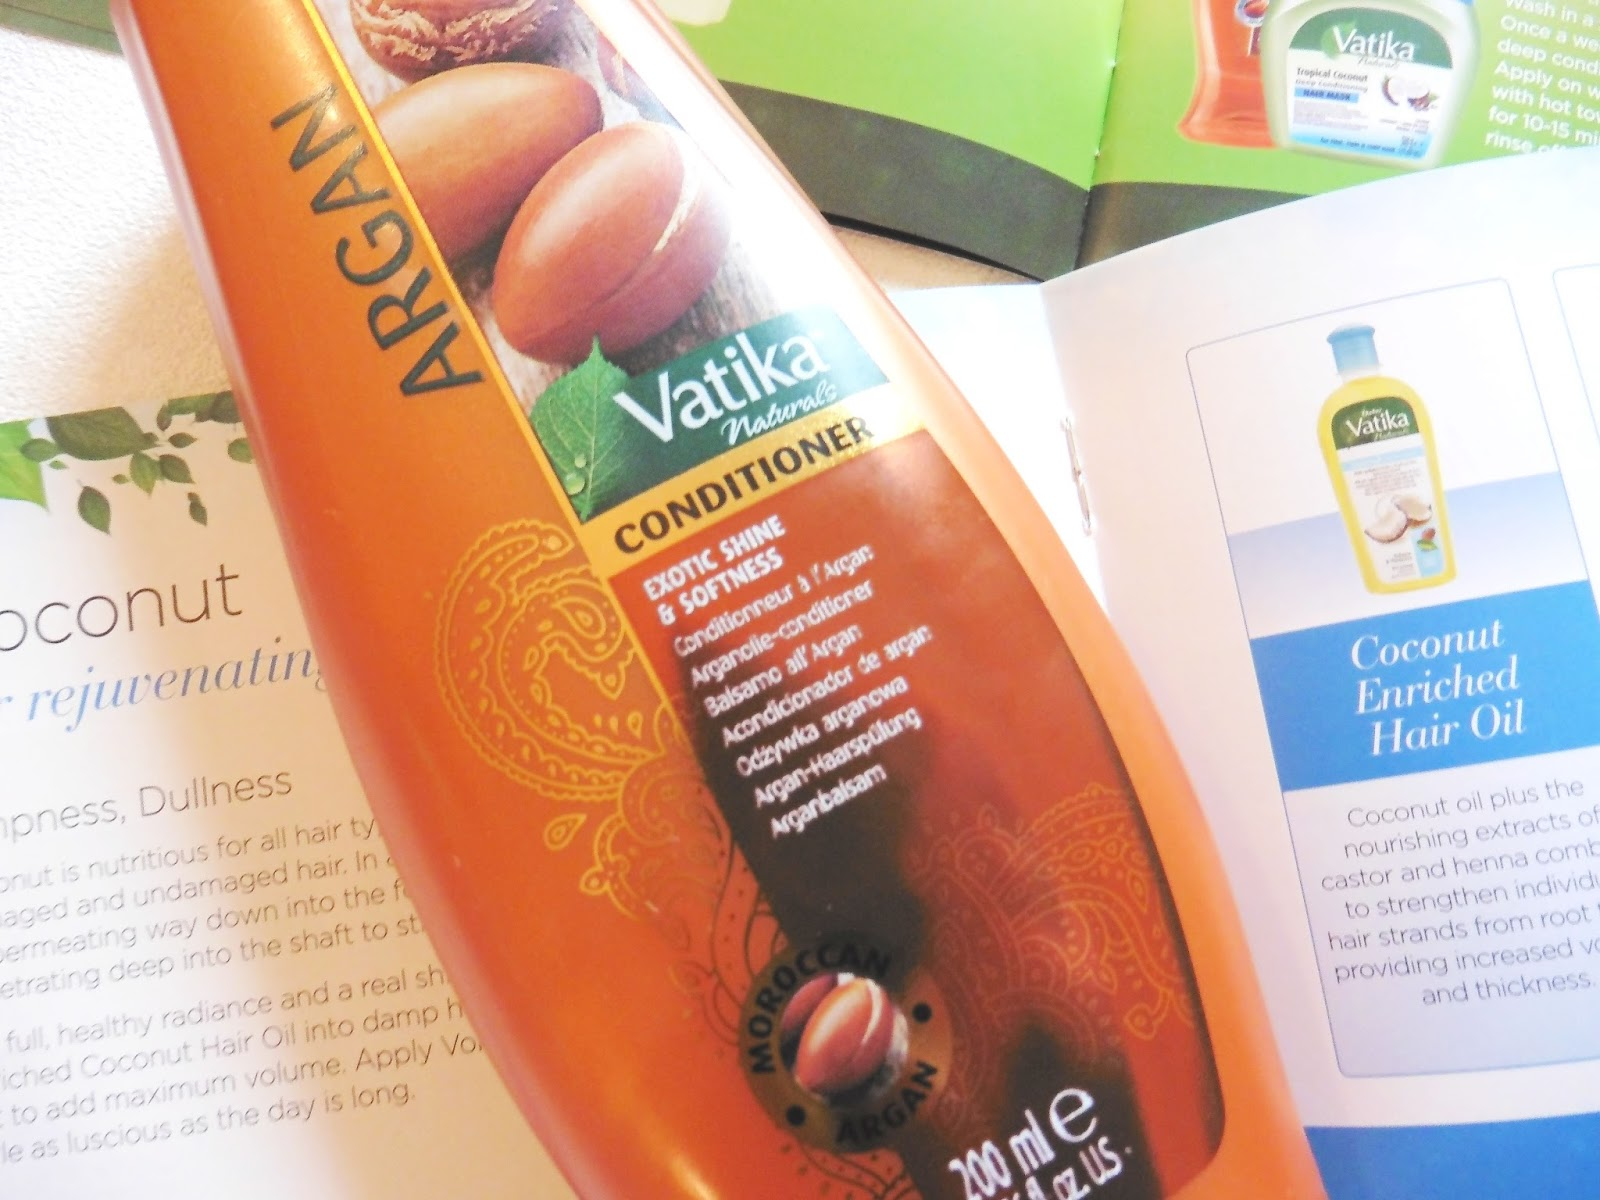 lebellelavie - Introducing the Dabur Vatika Naturals range